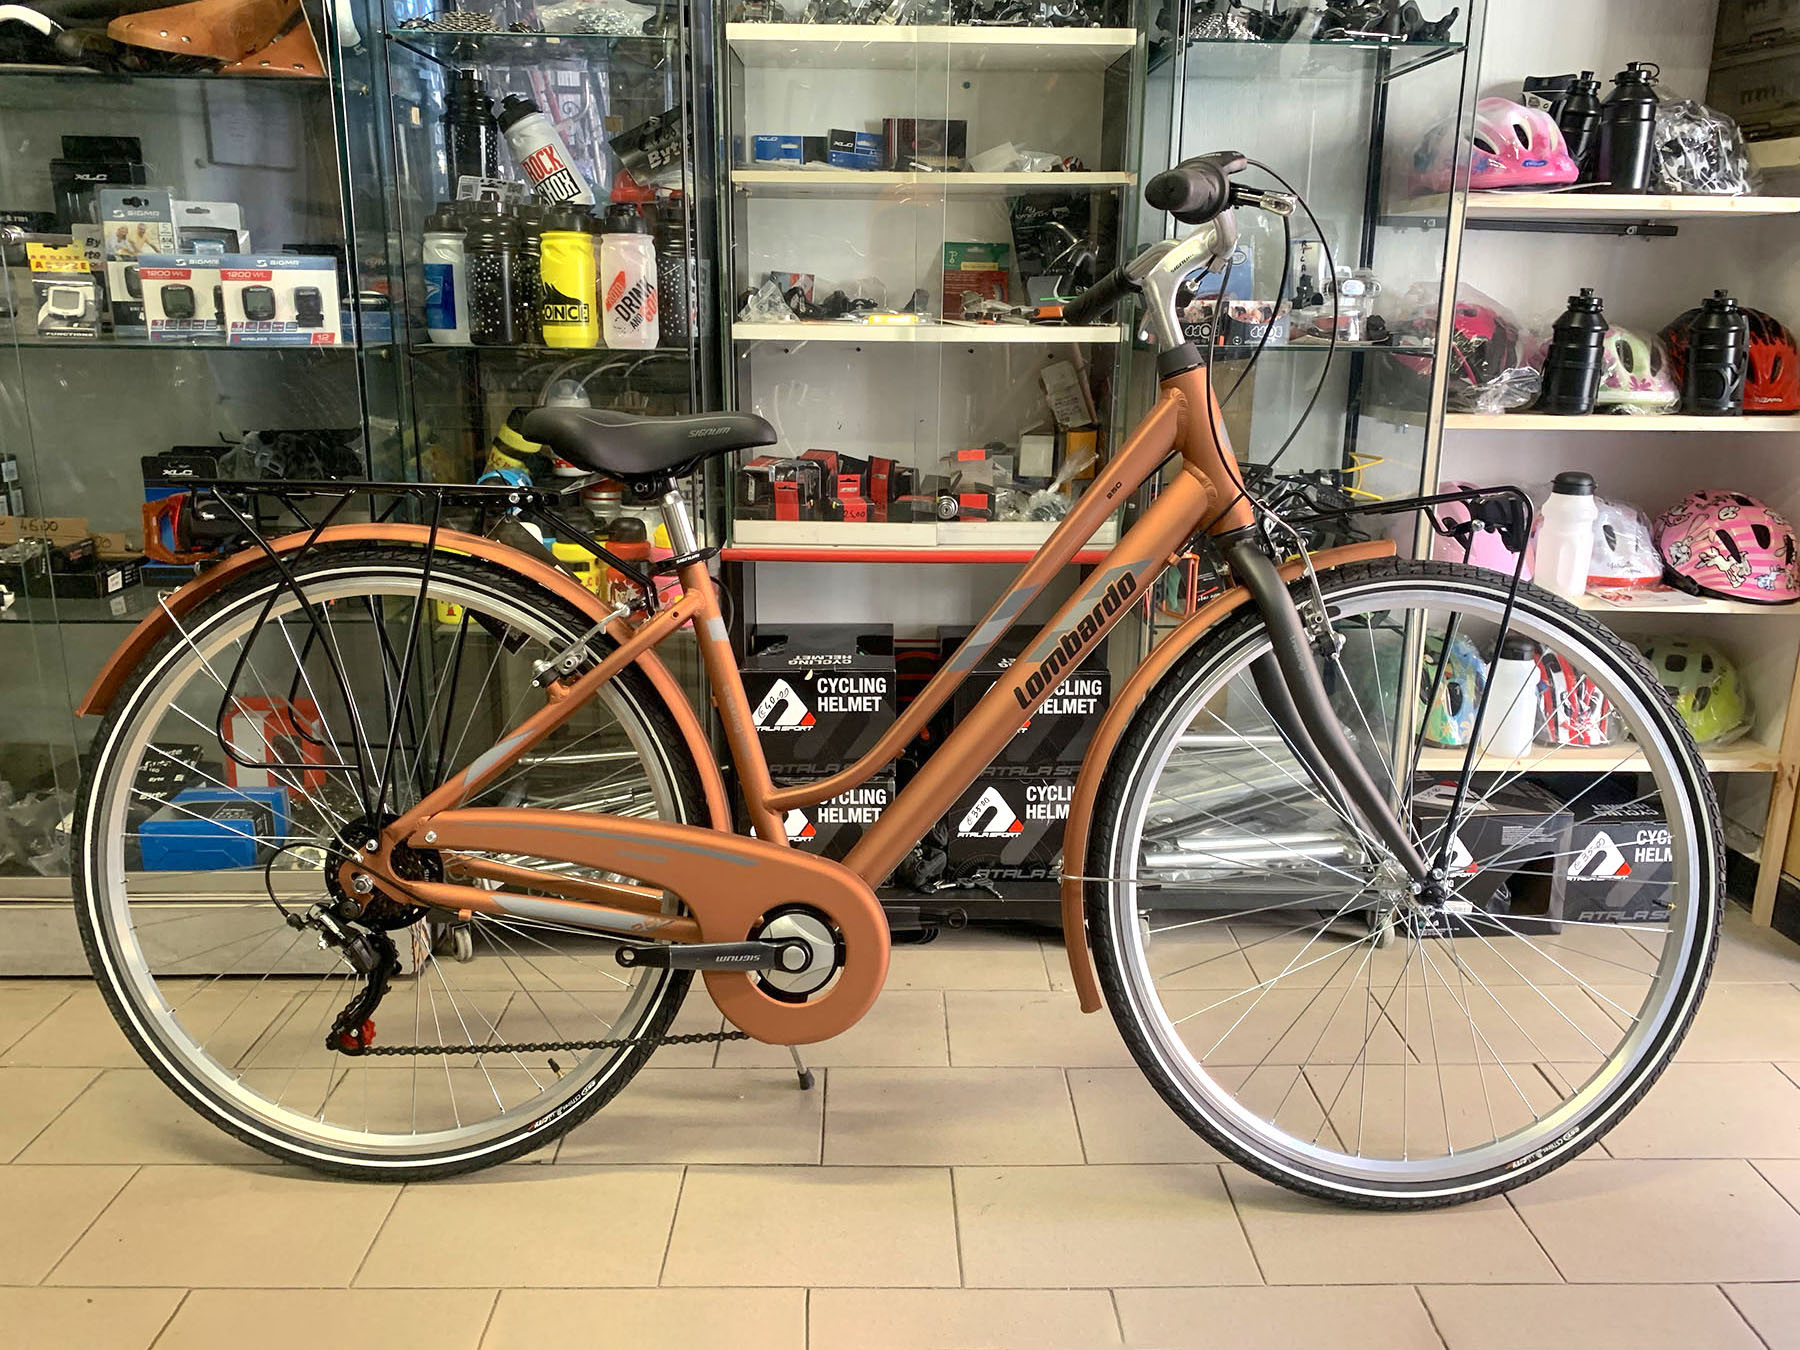 Cicli da Elio - City bike